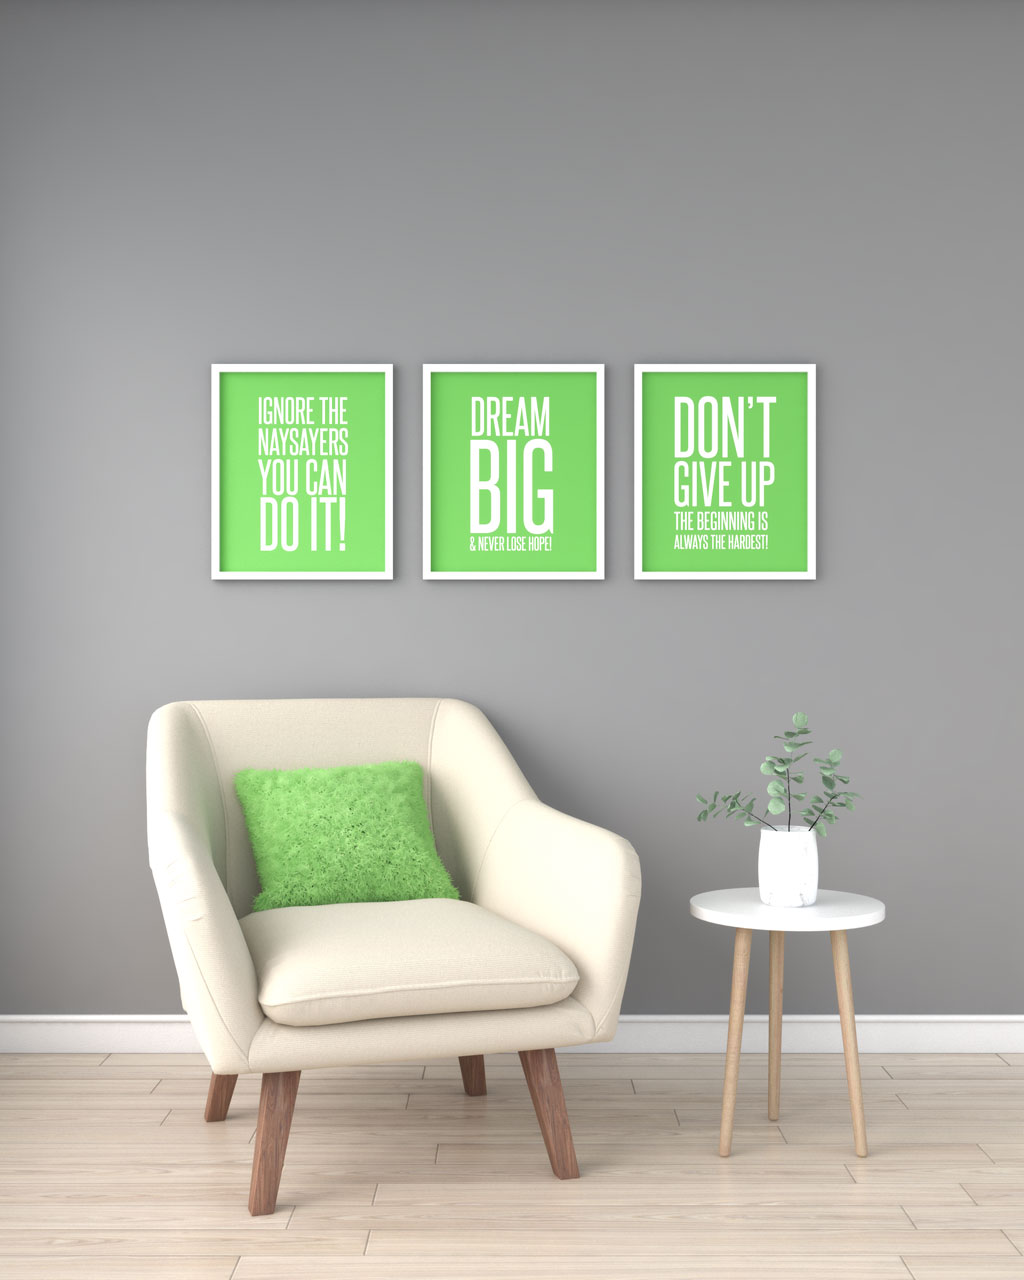 Lime green accent with gray walls